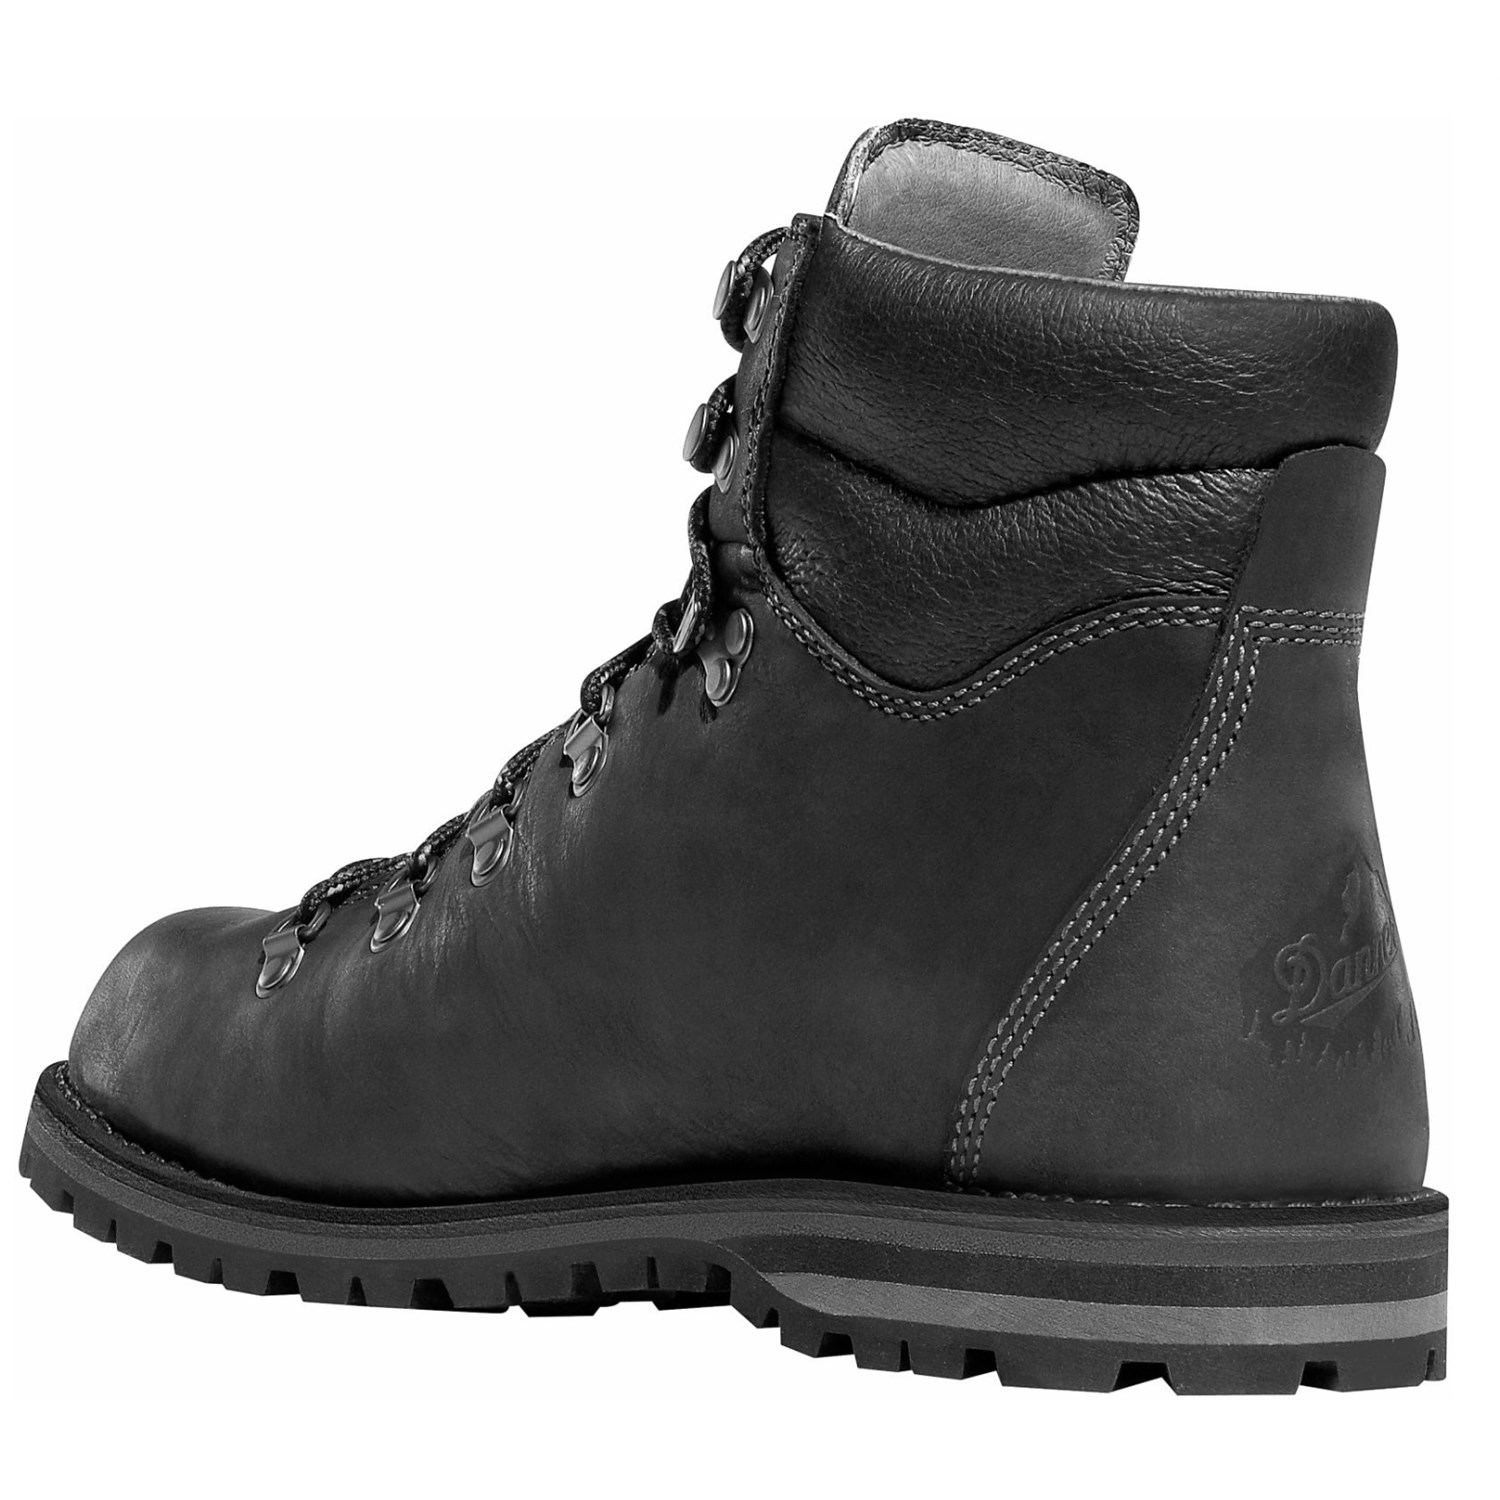 Danner Boots Warranty - Cr Boot